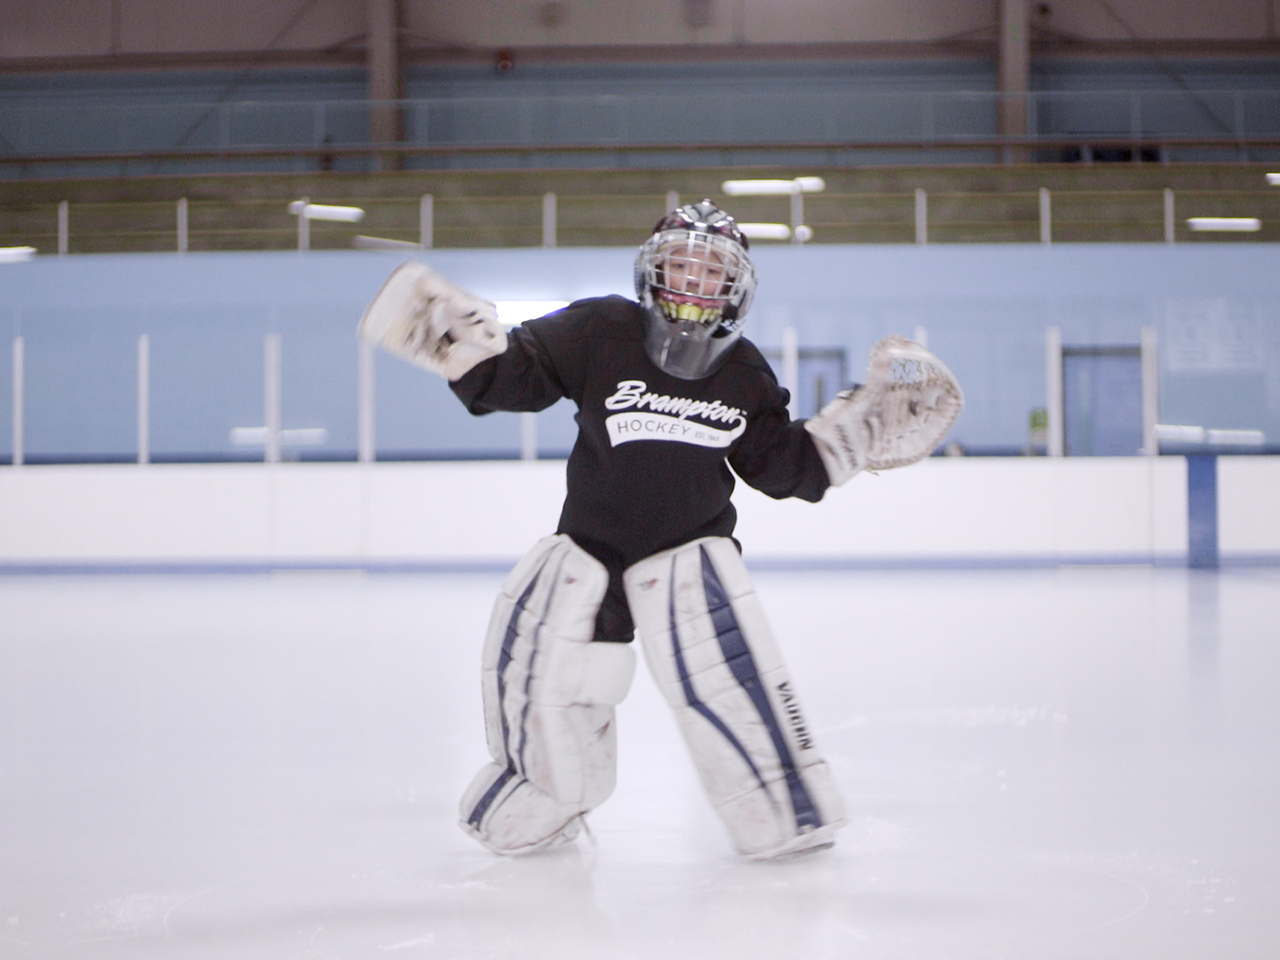 Young boy named Noah dancing in goalie gear on ice